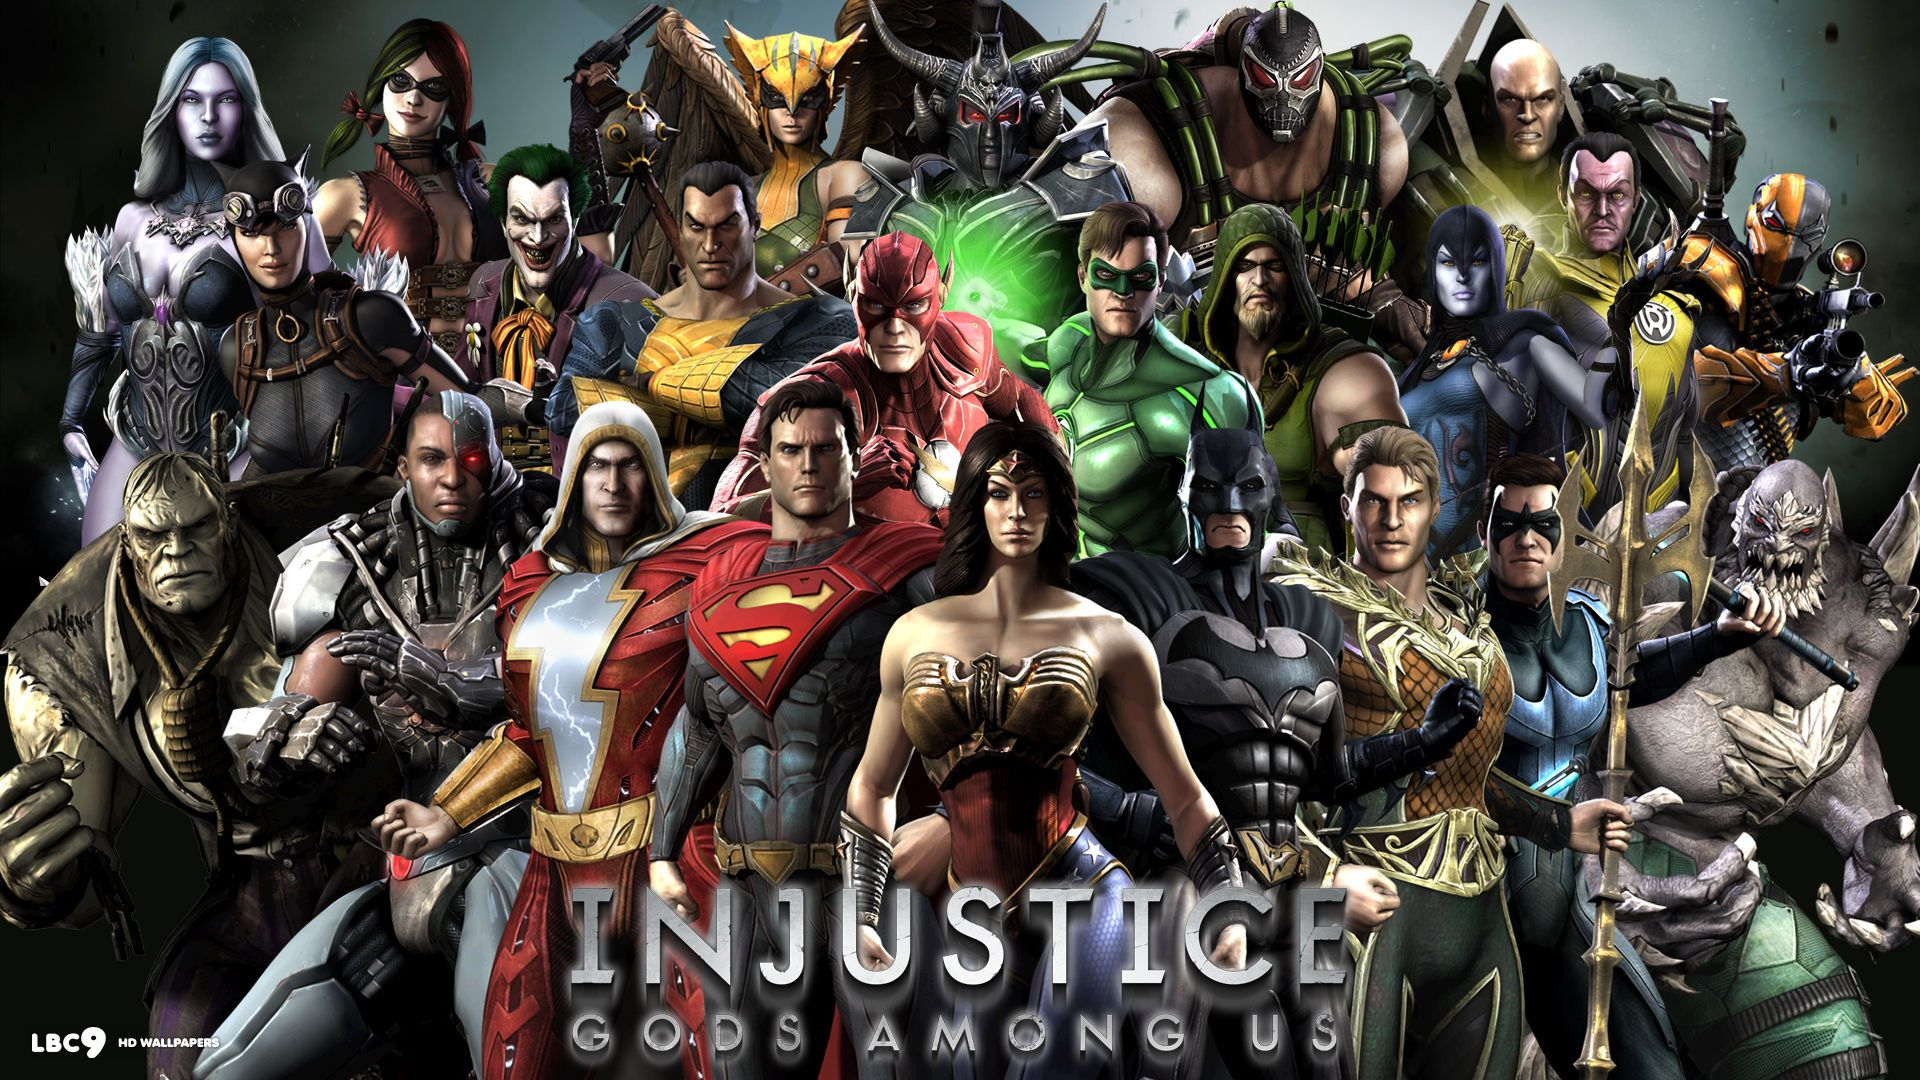 3220012 Injustice Gods Among Us Wallpaper Jpg 1920 1080 Injustice 2 Characters Injustice Dc Heroes